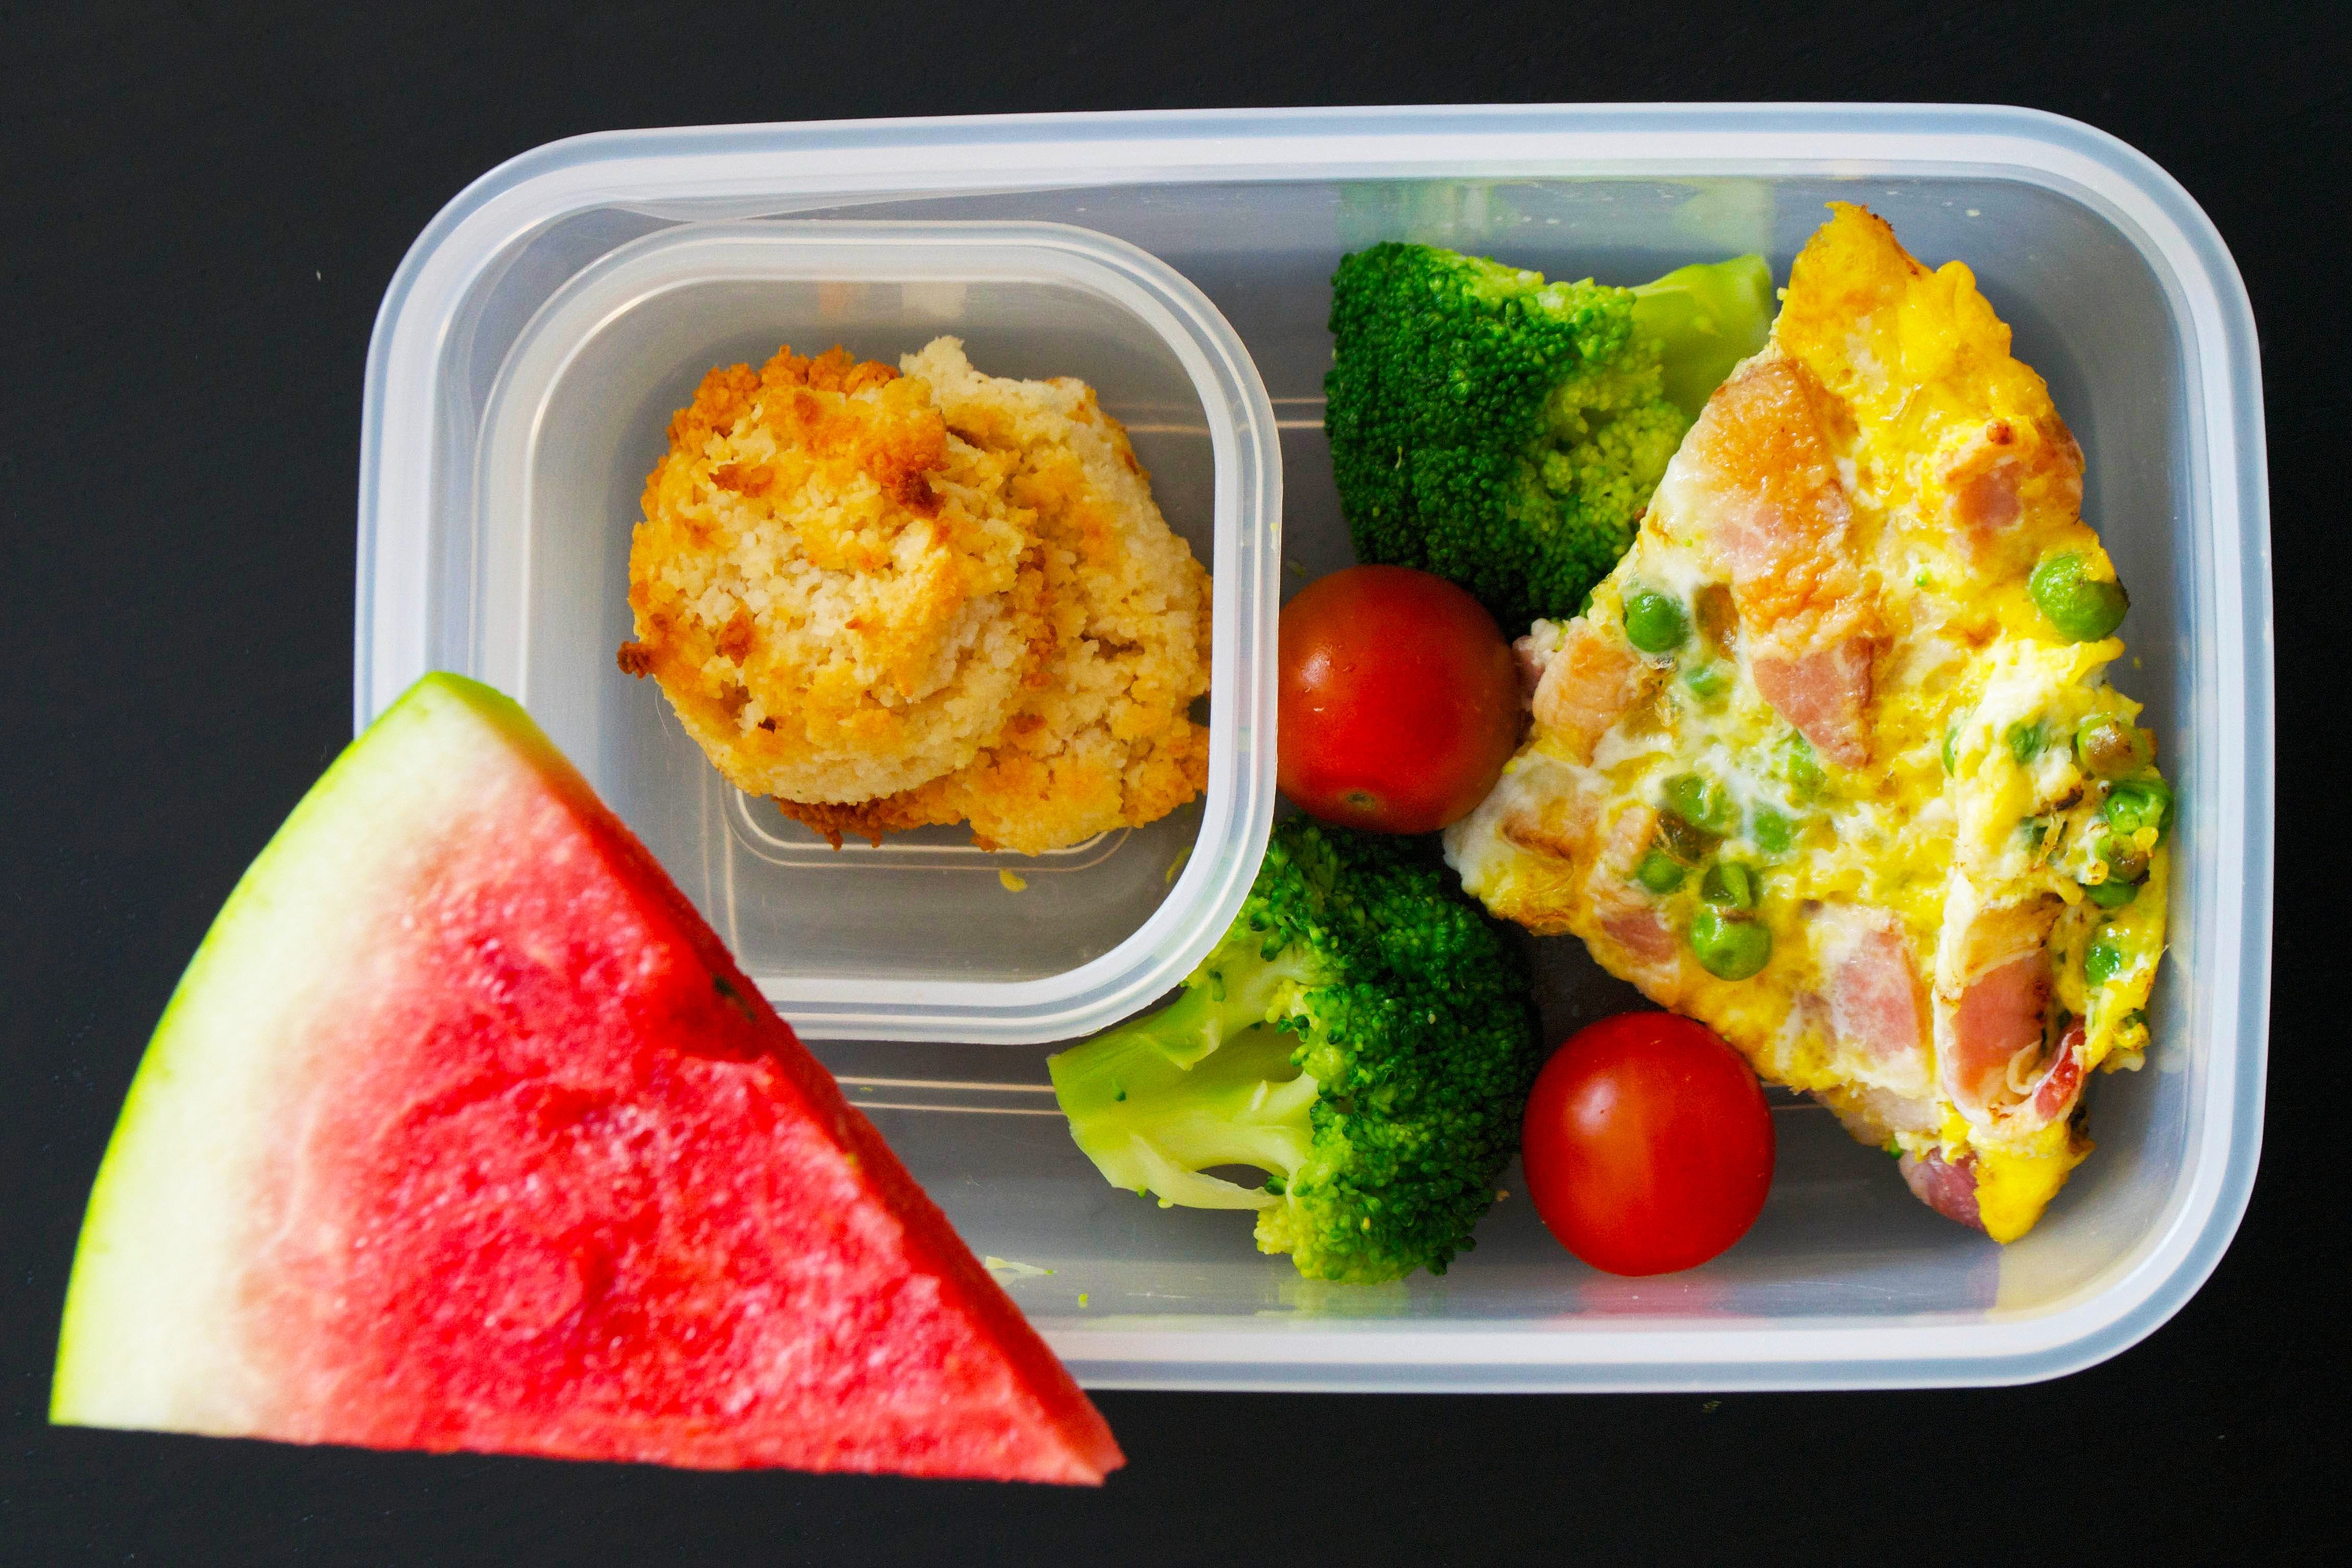 10 Lovable Paleo Lunch Ideas For Work 5 days of paleo packed lunches for kids and adults tooprimal eye 4 2020